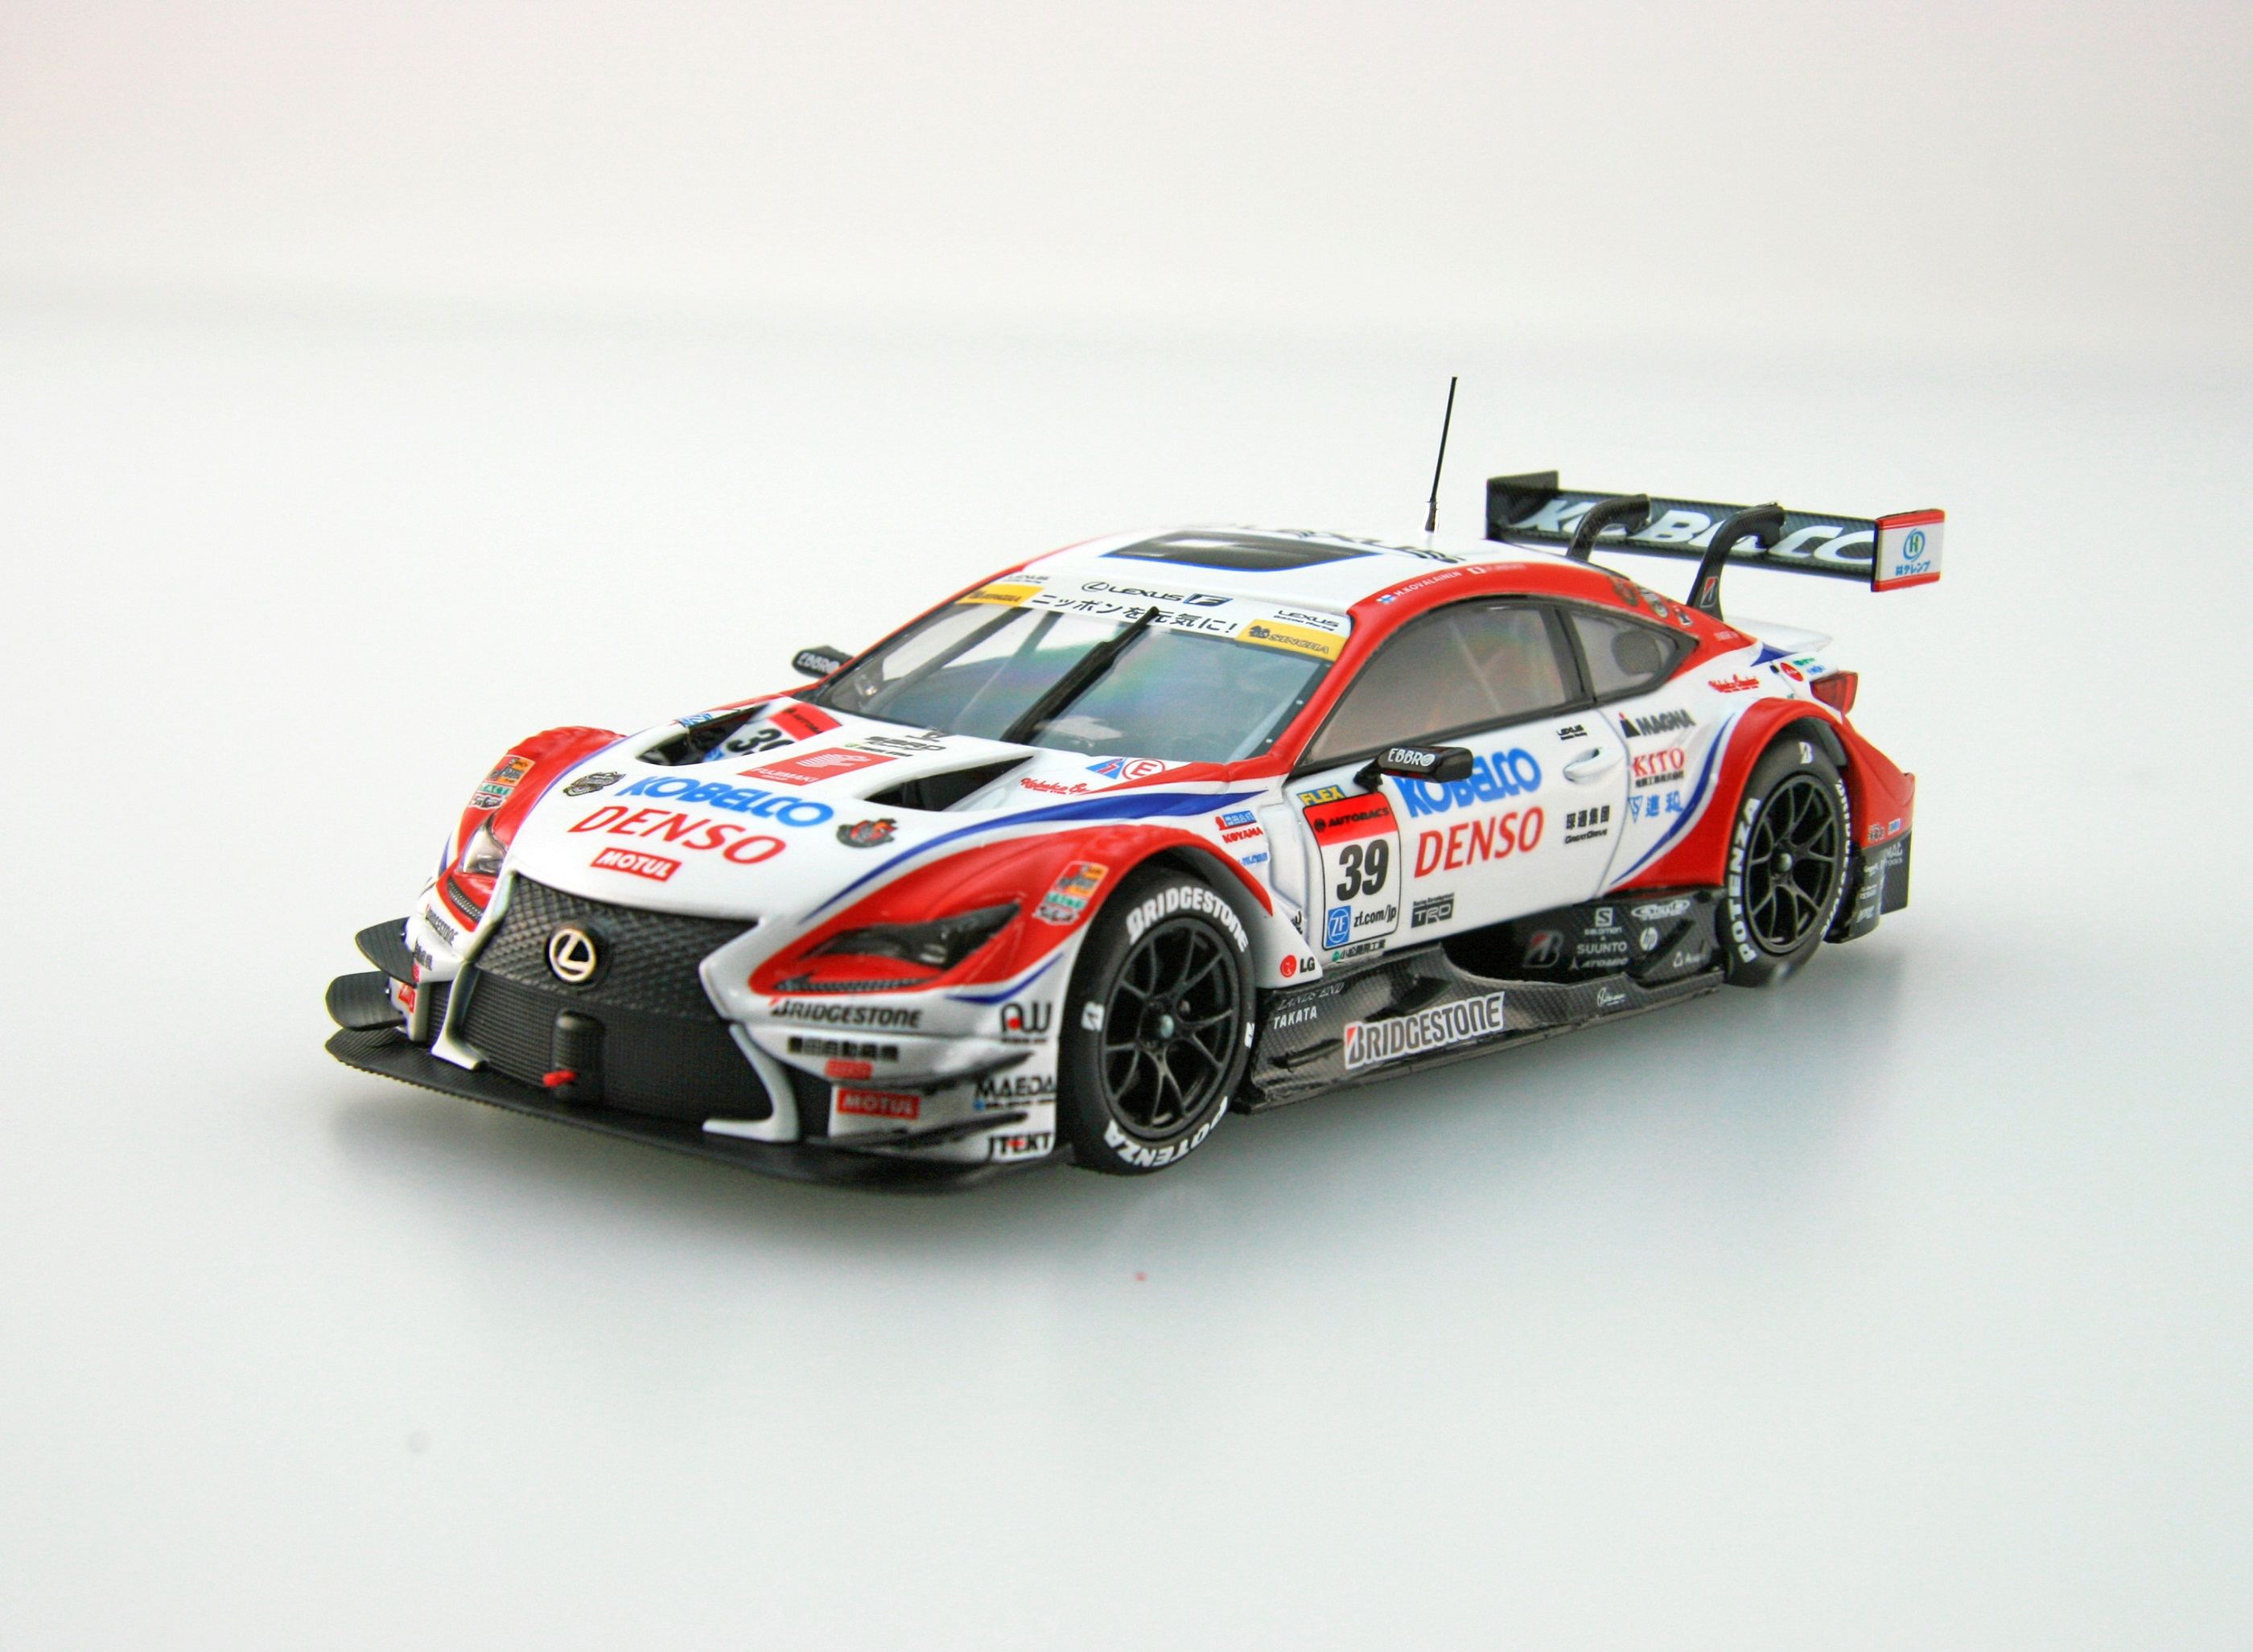 【45378】DENSO KOBELCO SARD RC F SUPER GT GT500 2016 Champion Car No.39